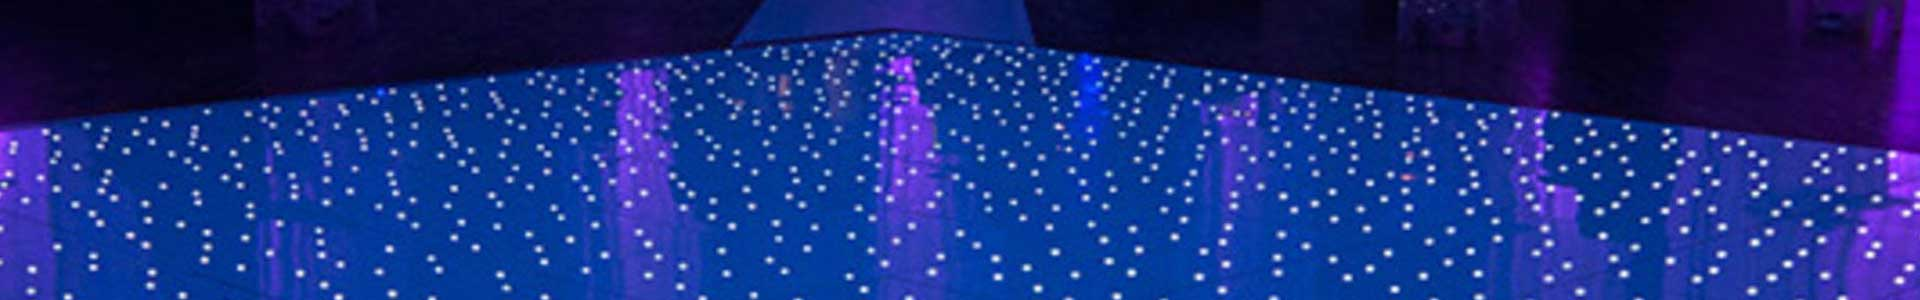 Starlight LED Dance Floor Perth and Kinross